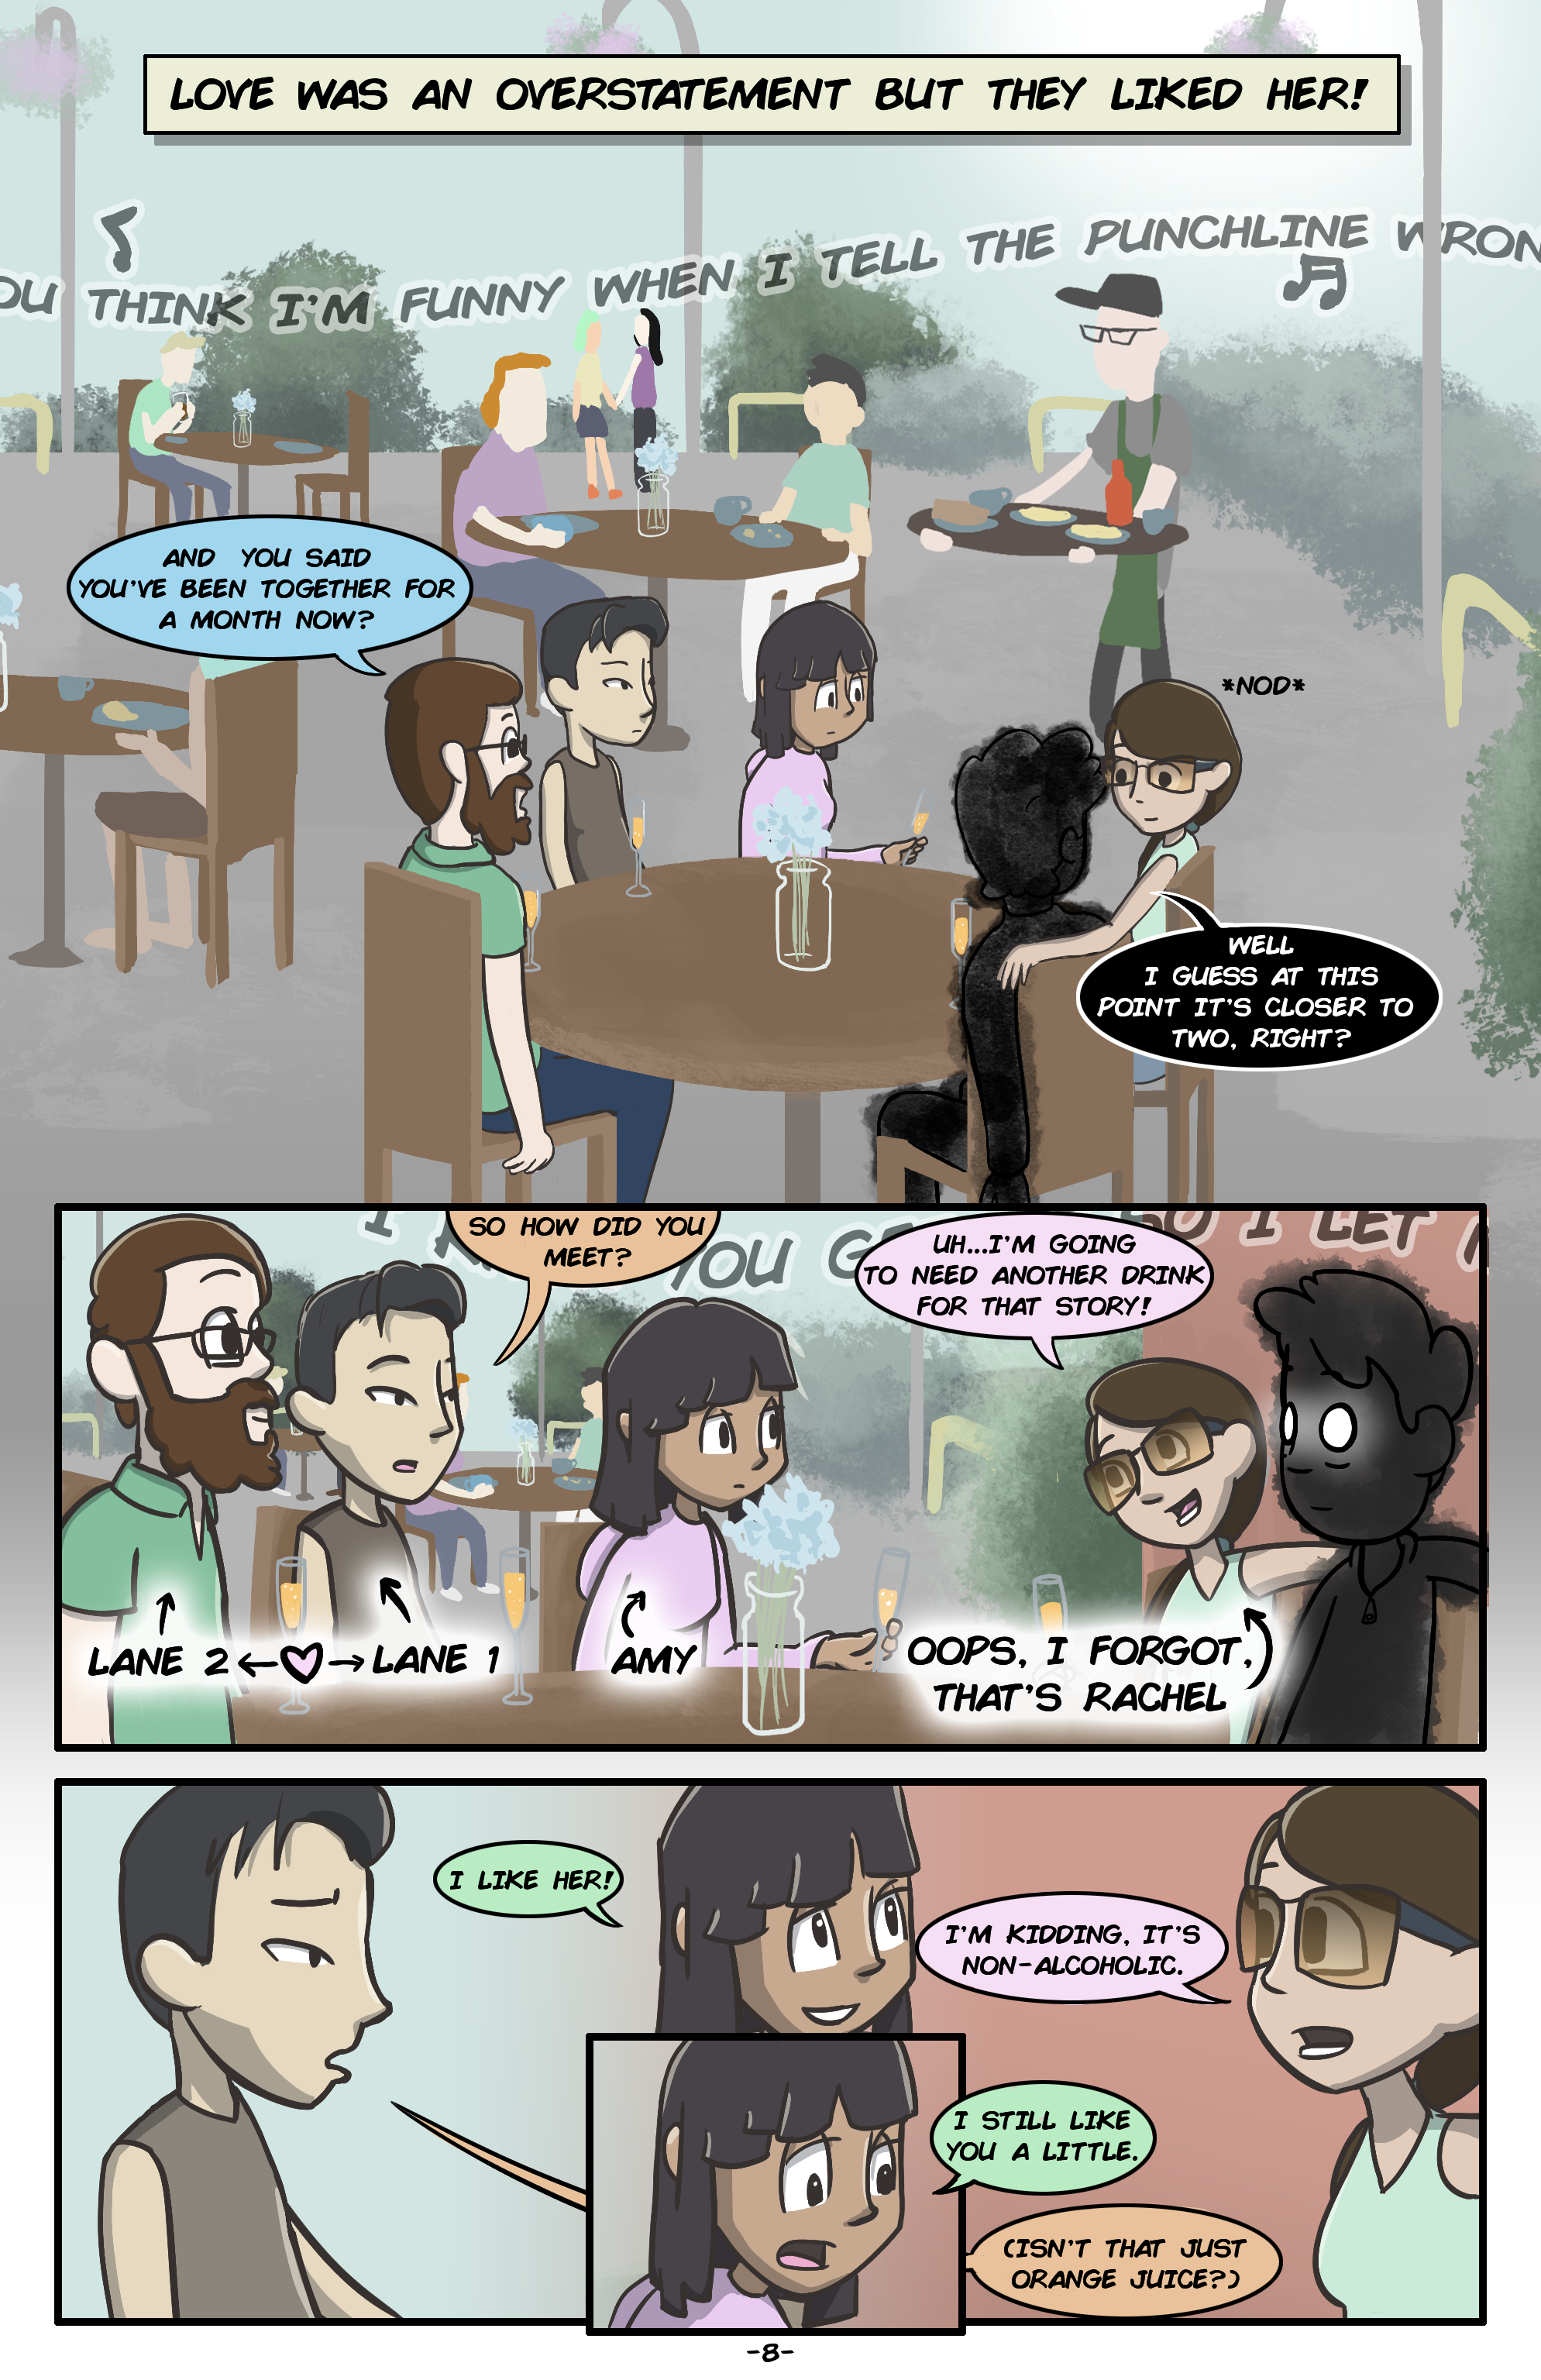 Page 8 Layout_Full-Size_v2.png